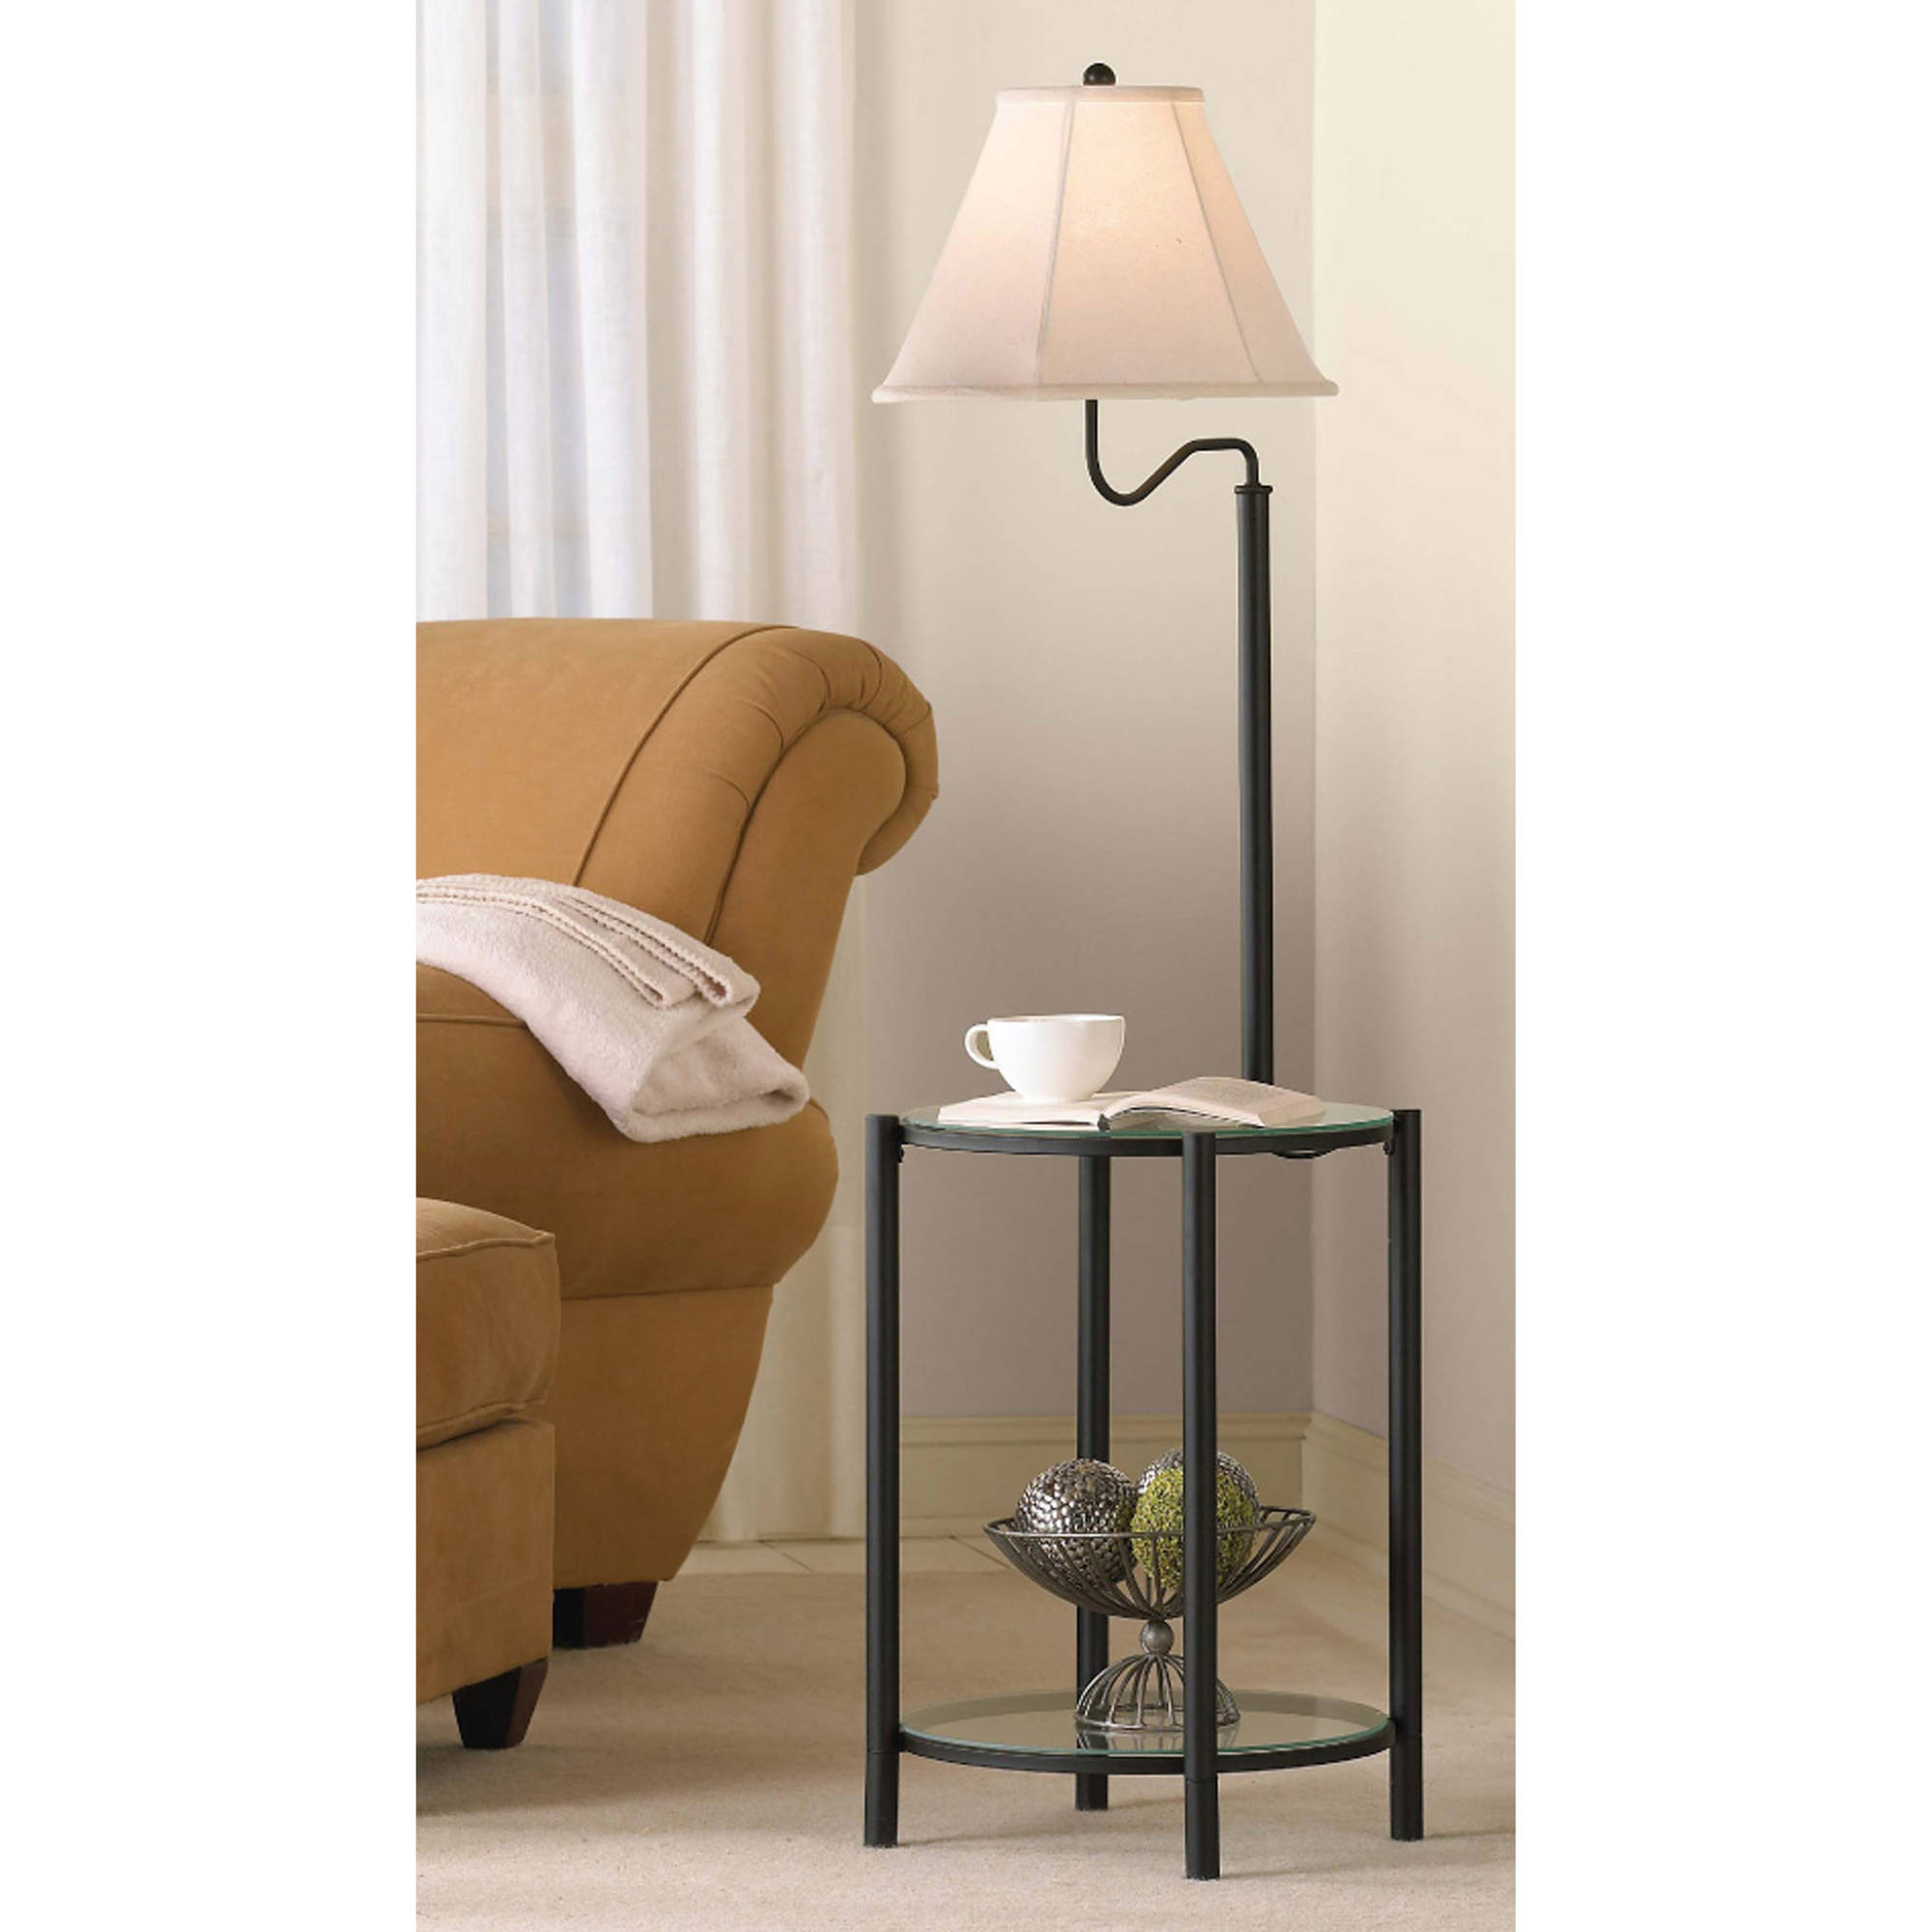 mainstays glass end table floor lamp matte black cfl bulb included combinations metal scroll coffee gold side modern royal furniture delivery thomasville chairs white dark brown